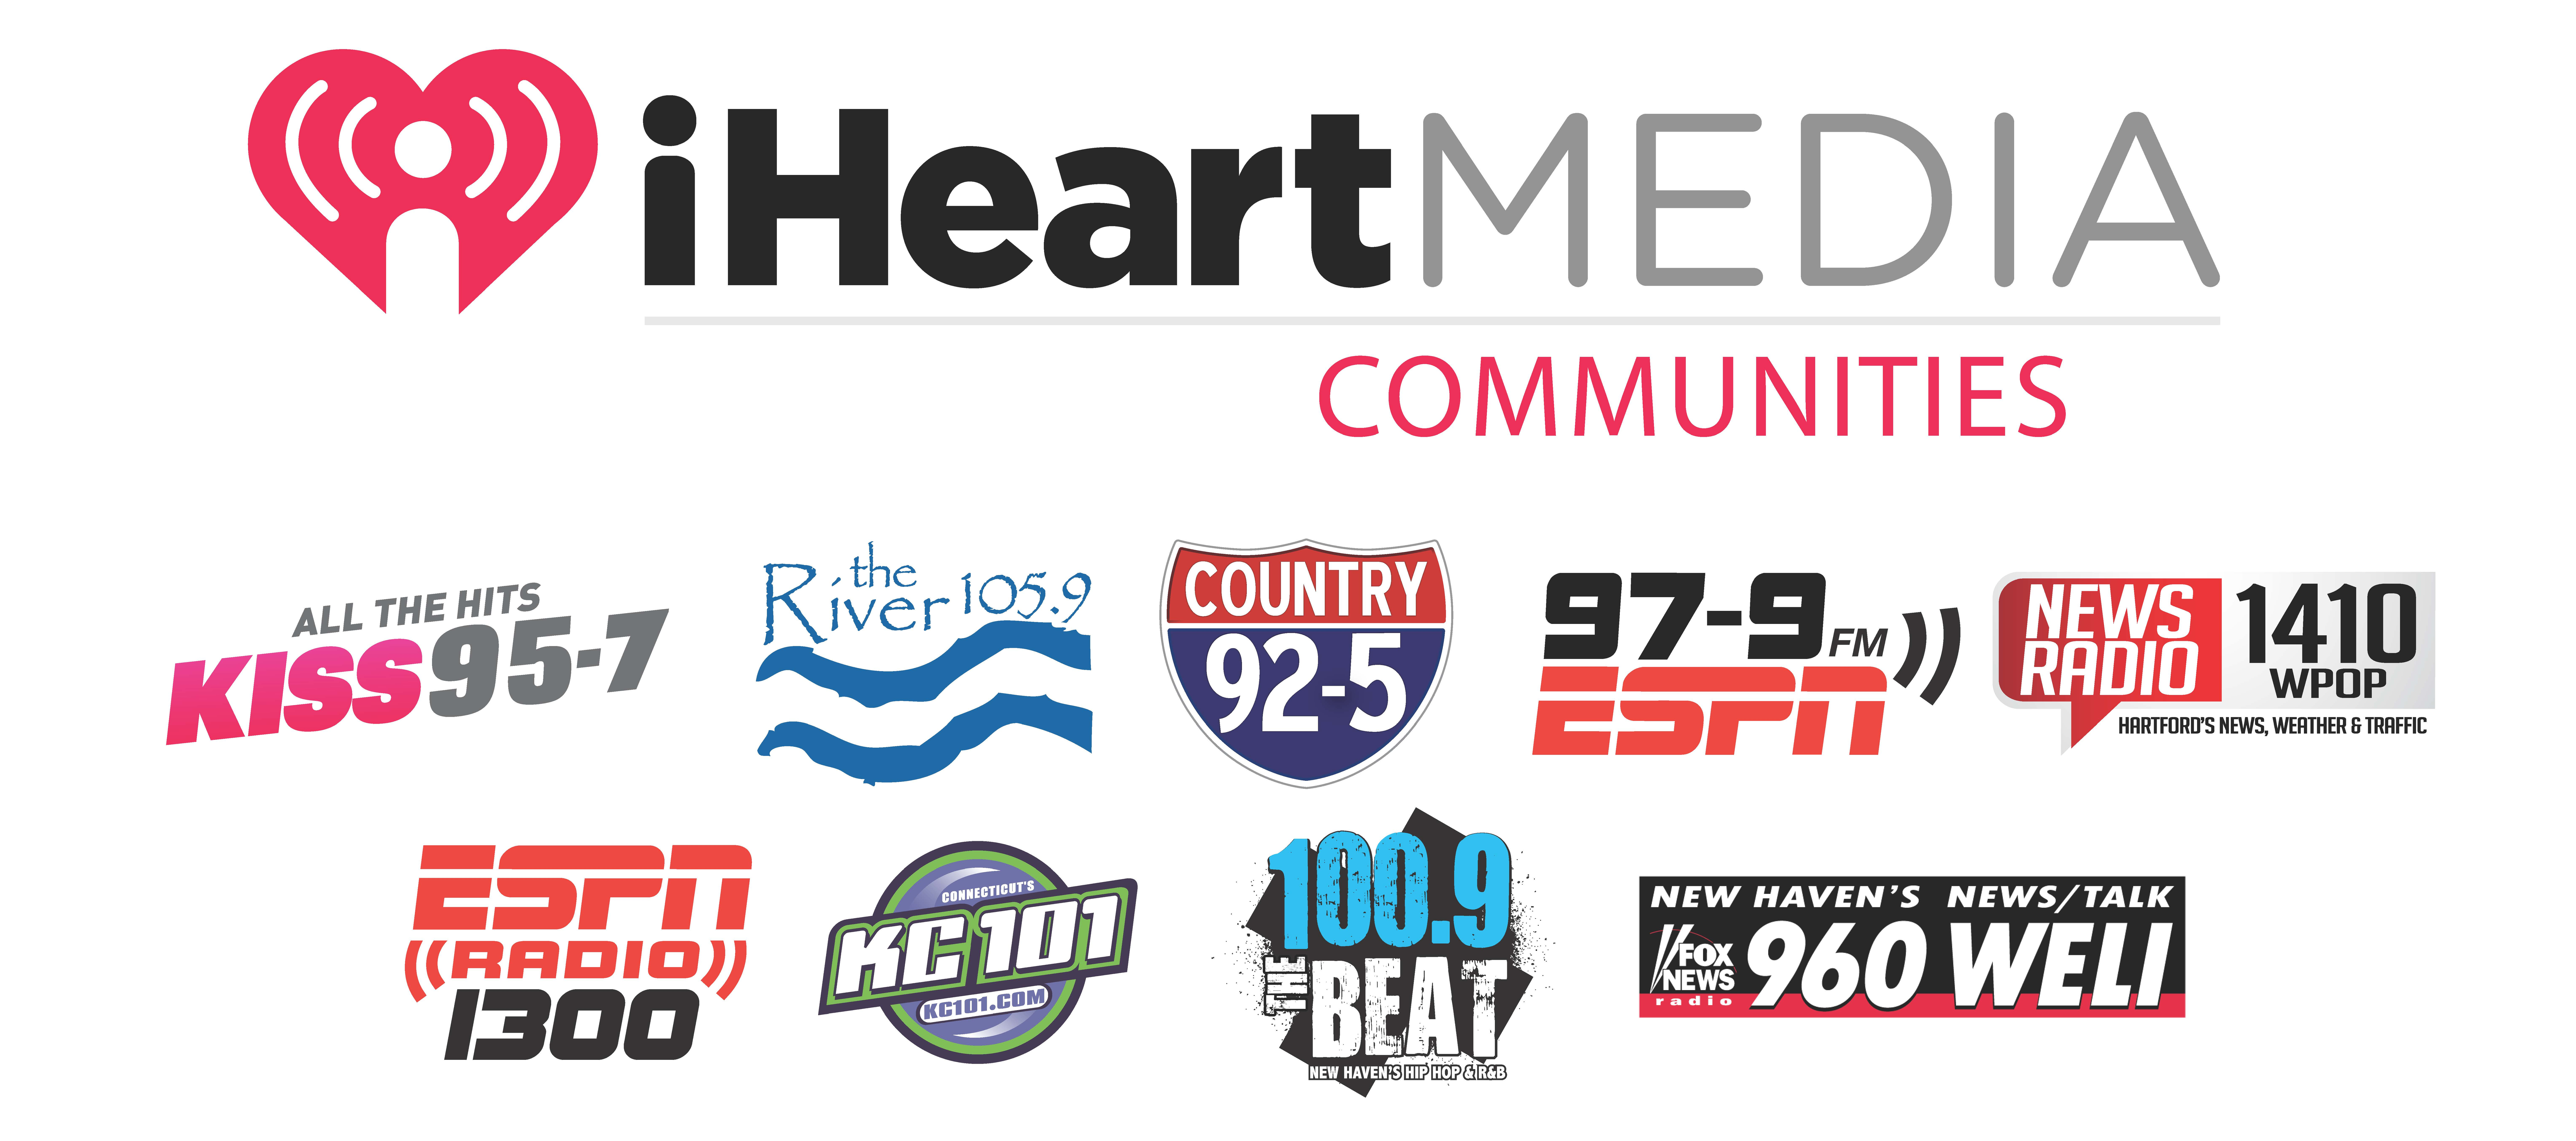 19. iHeartMedia (Media)